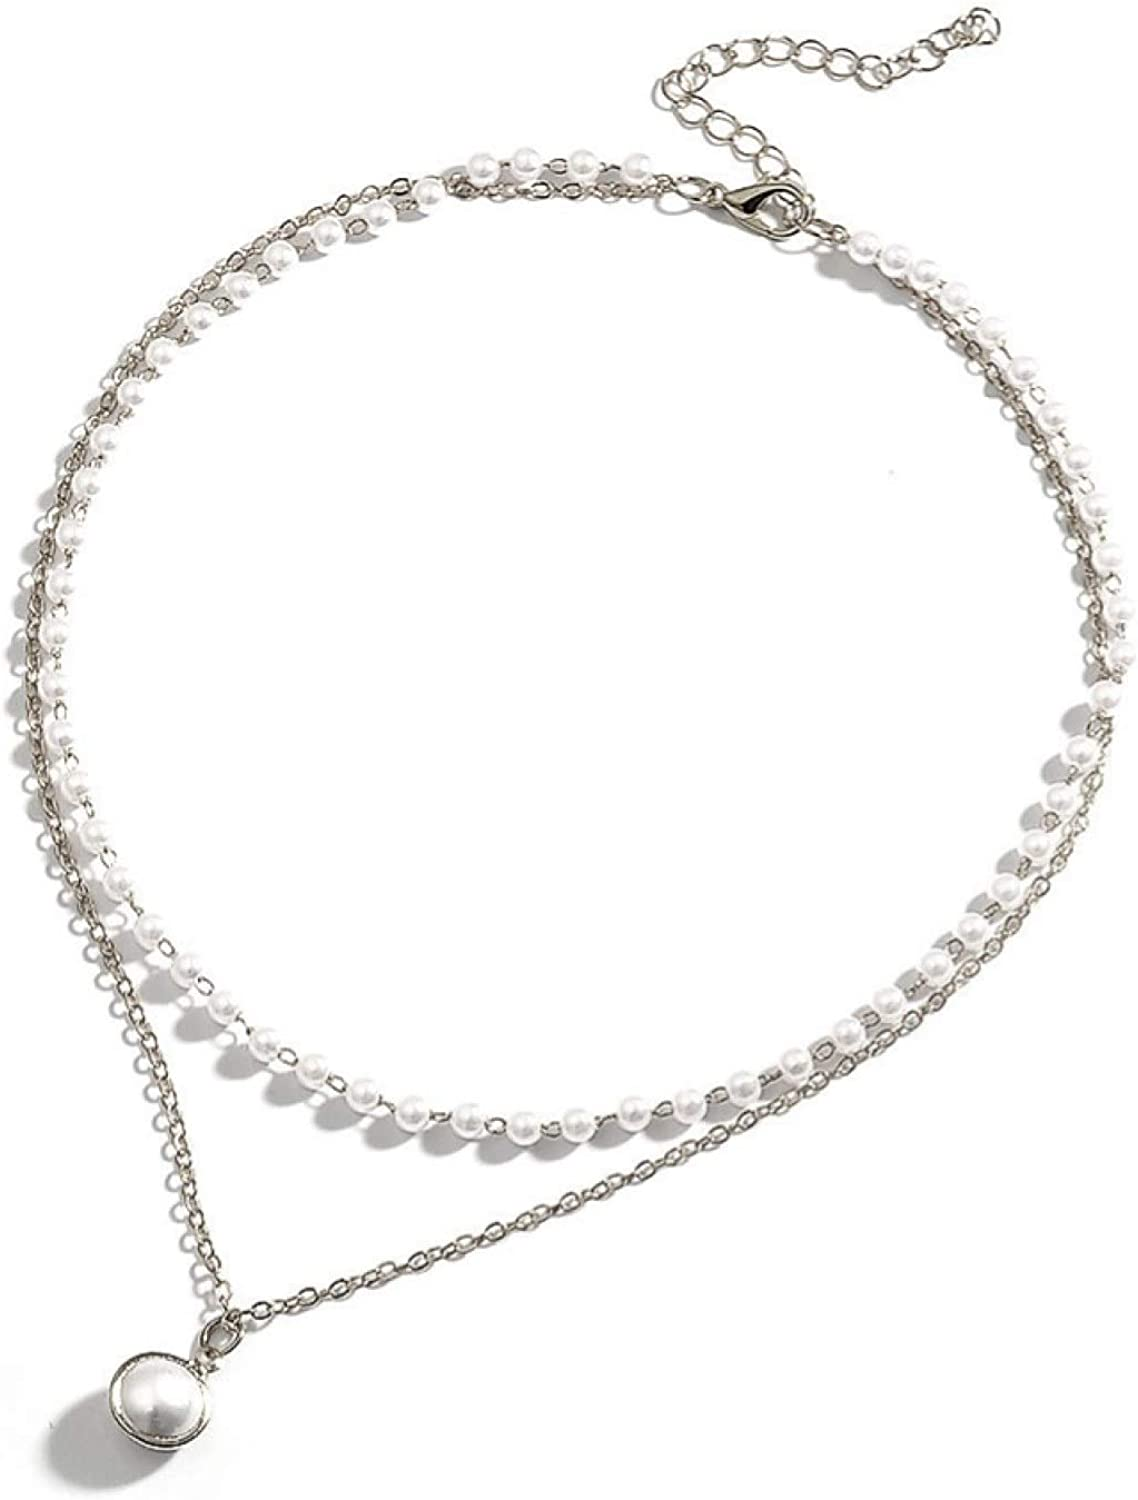 Max 61% OFF Bargain sale Simple Style Double-Layer Faux Pearl Clavicle Necklace Pendant C